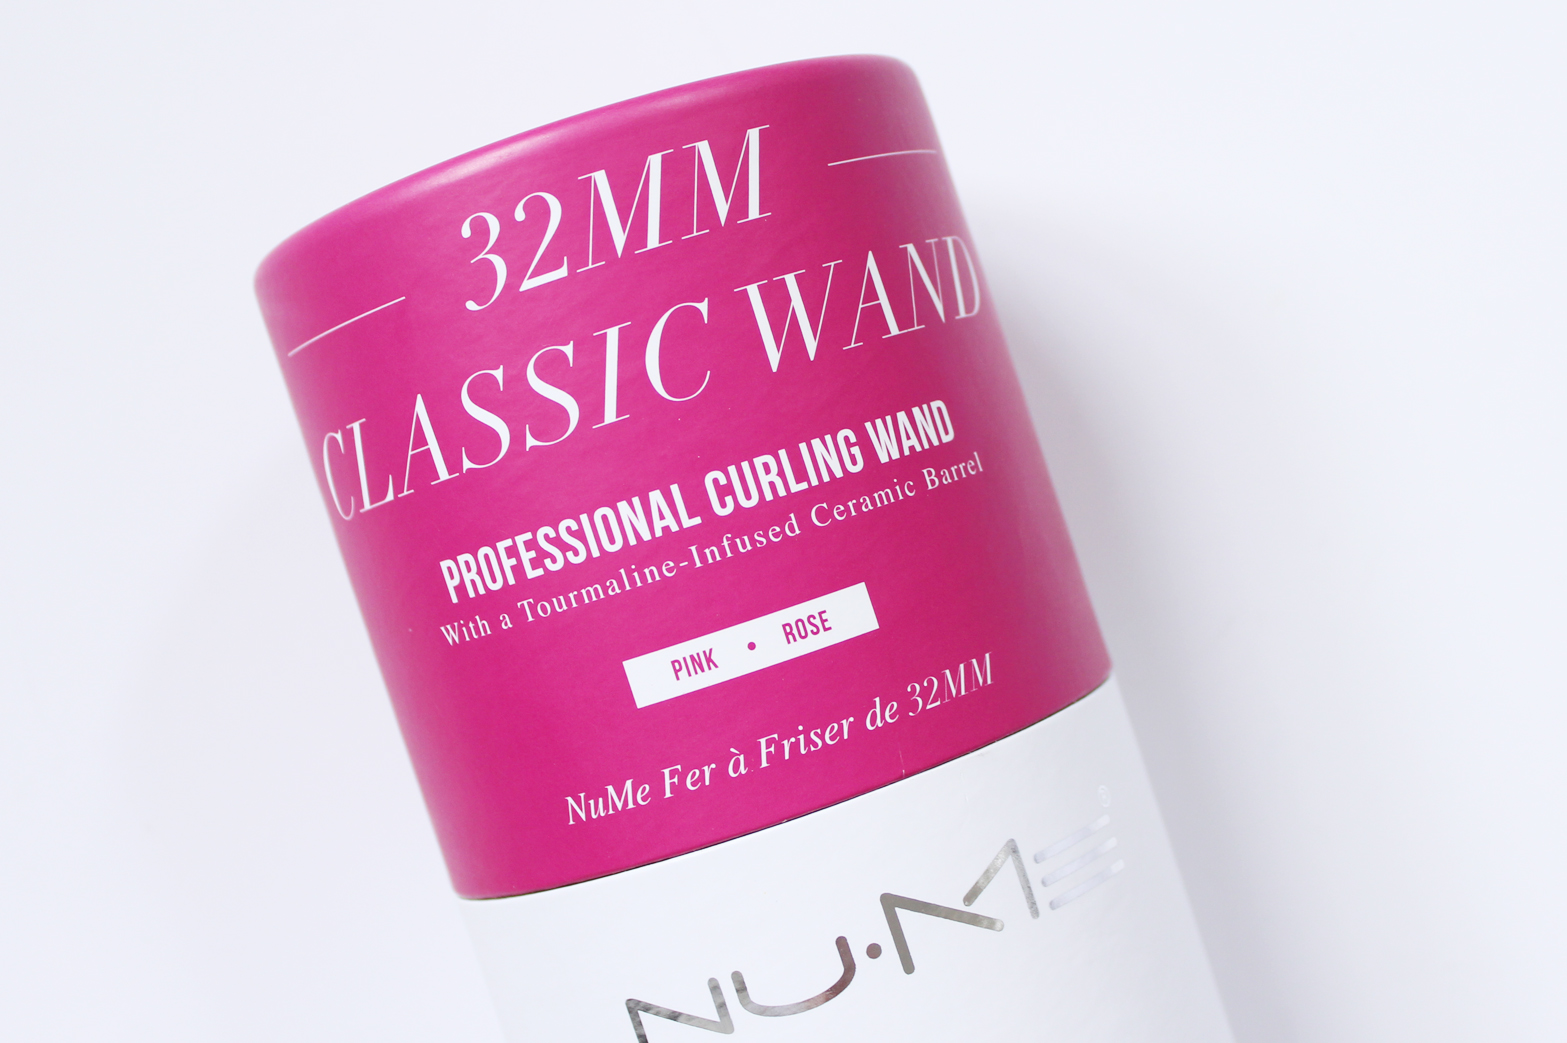 NUME | 32mm Classic Curling Wand - Review - CassandraMyee